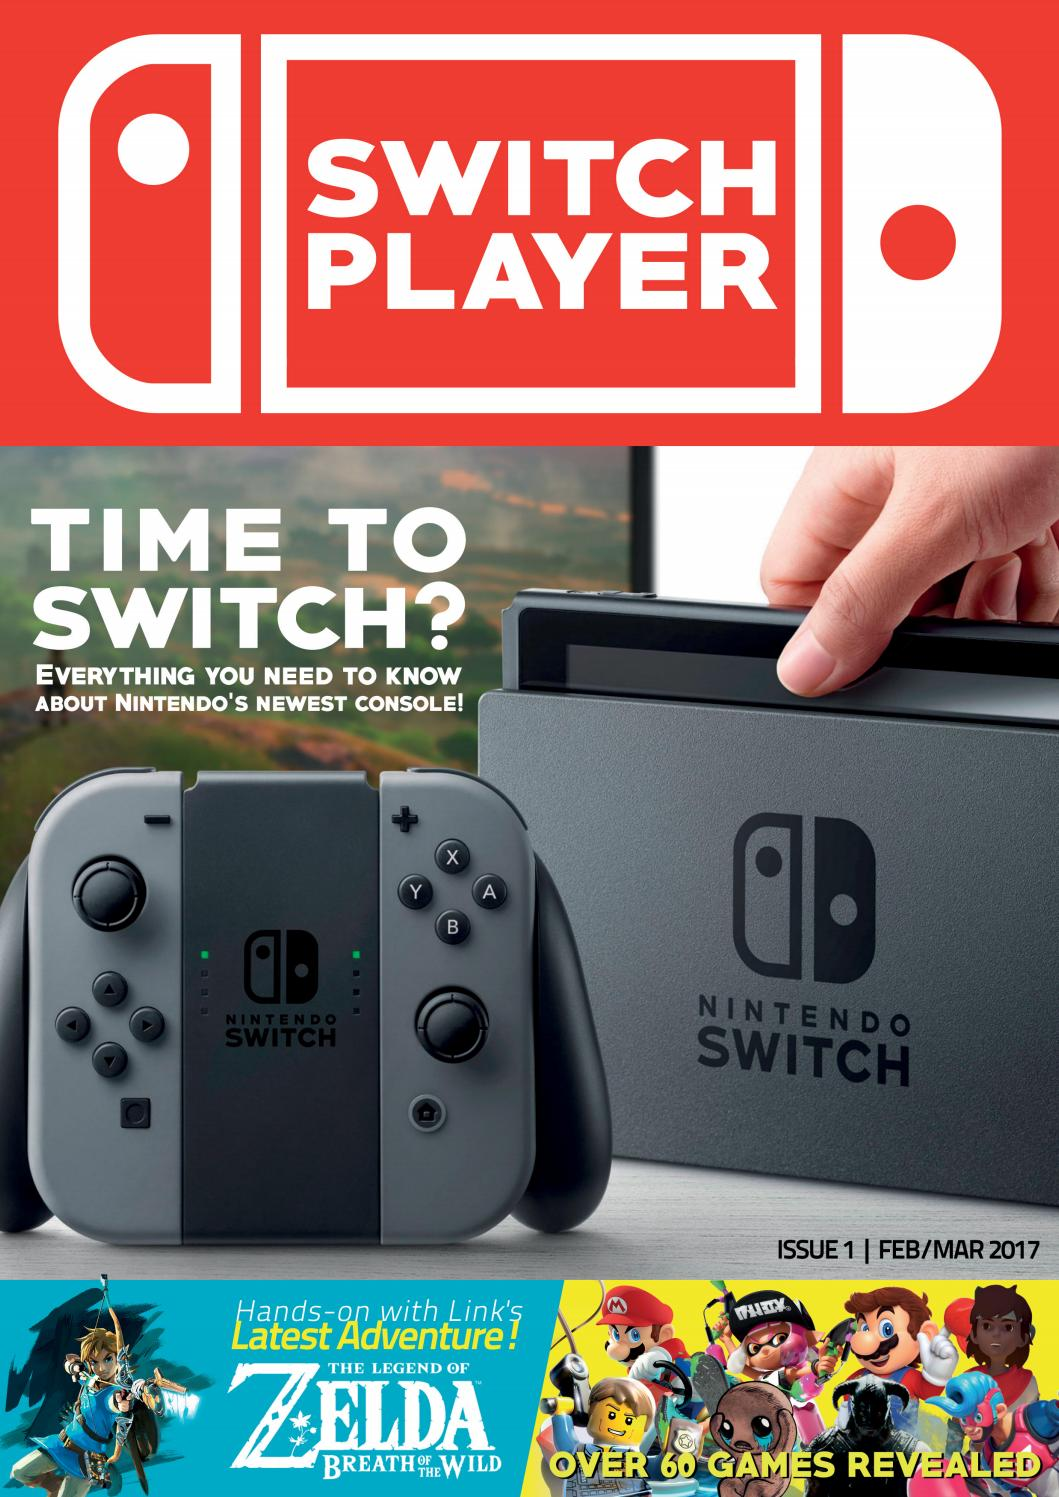 Console Magazine Switch Player Issue 1